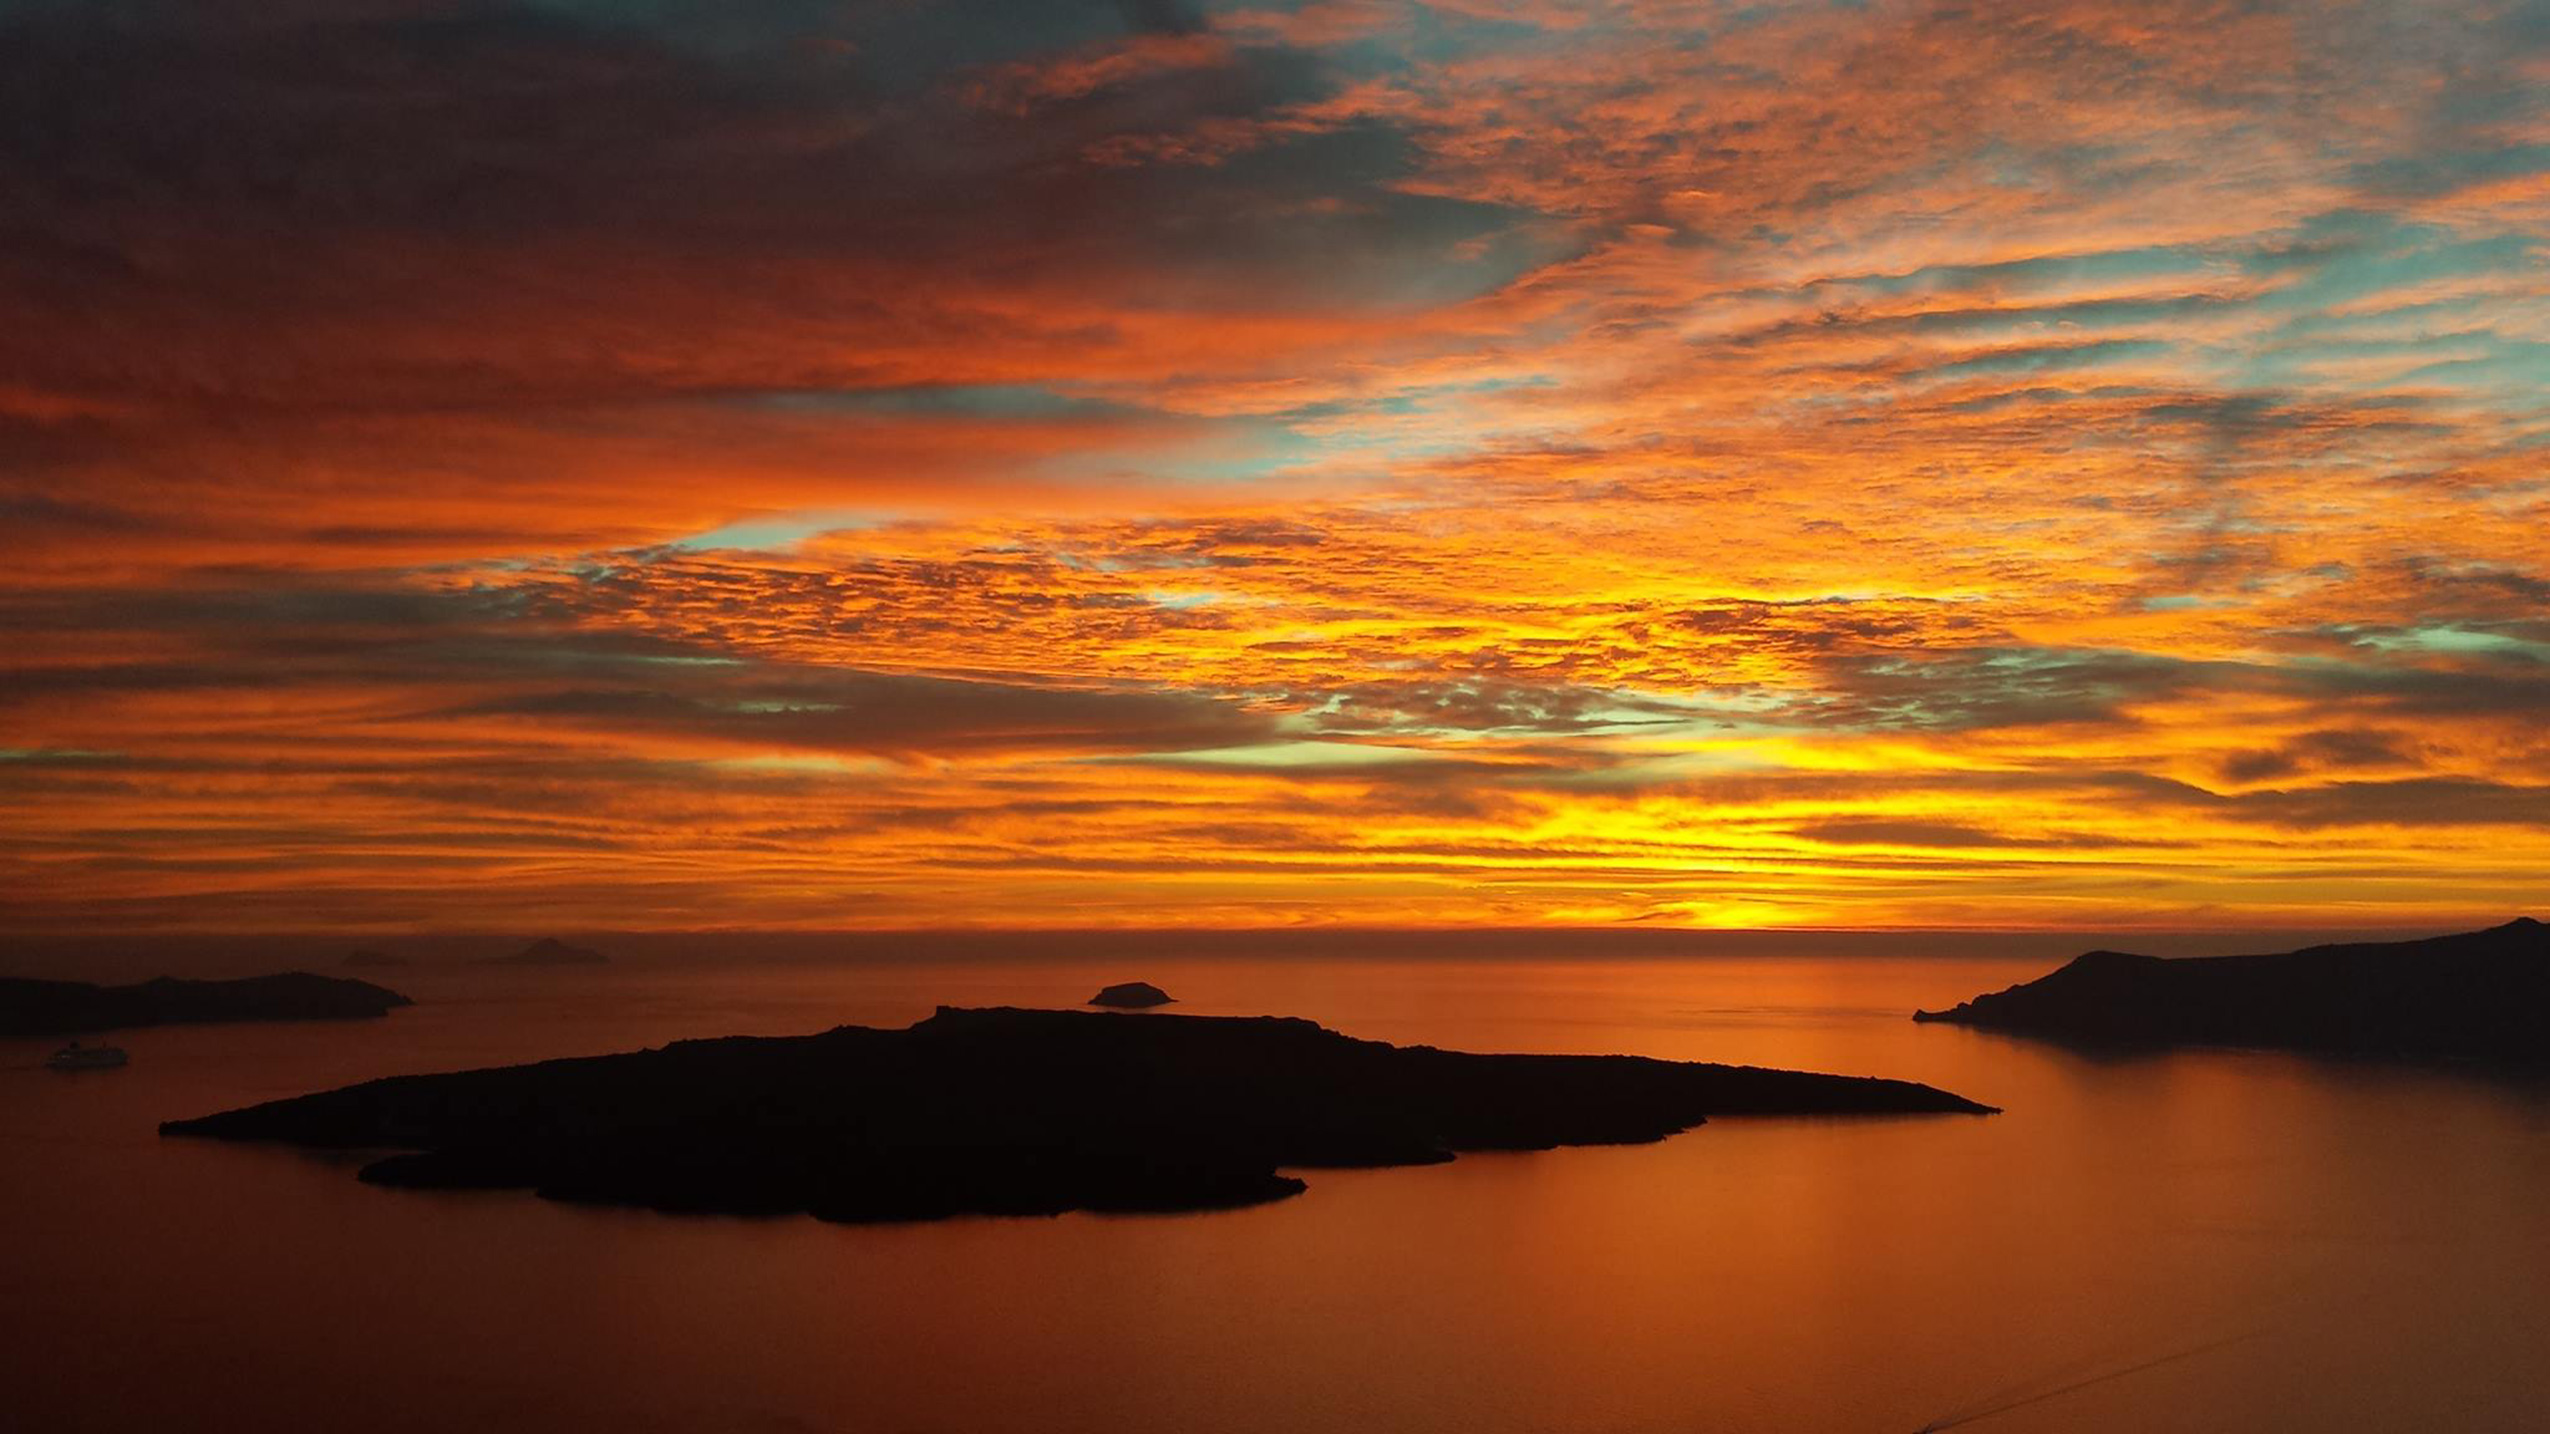 Santorini sunset images galleries for Sunset lodge